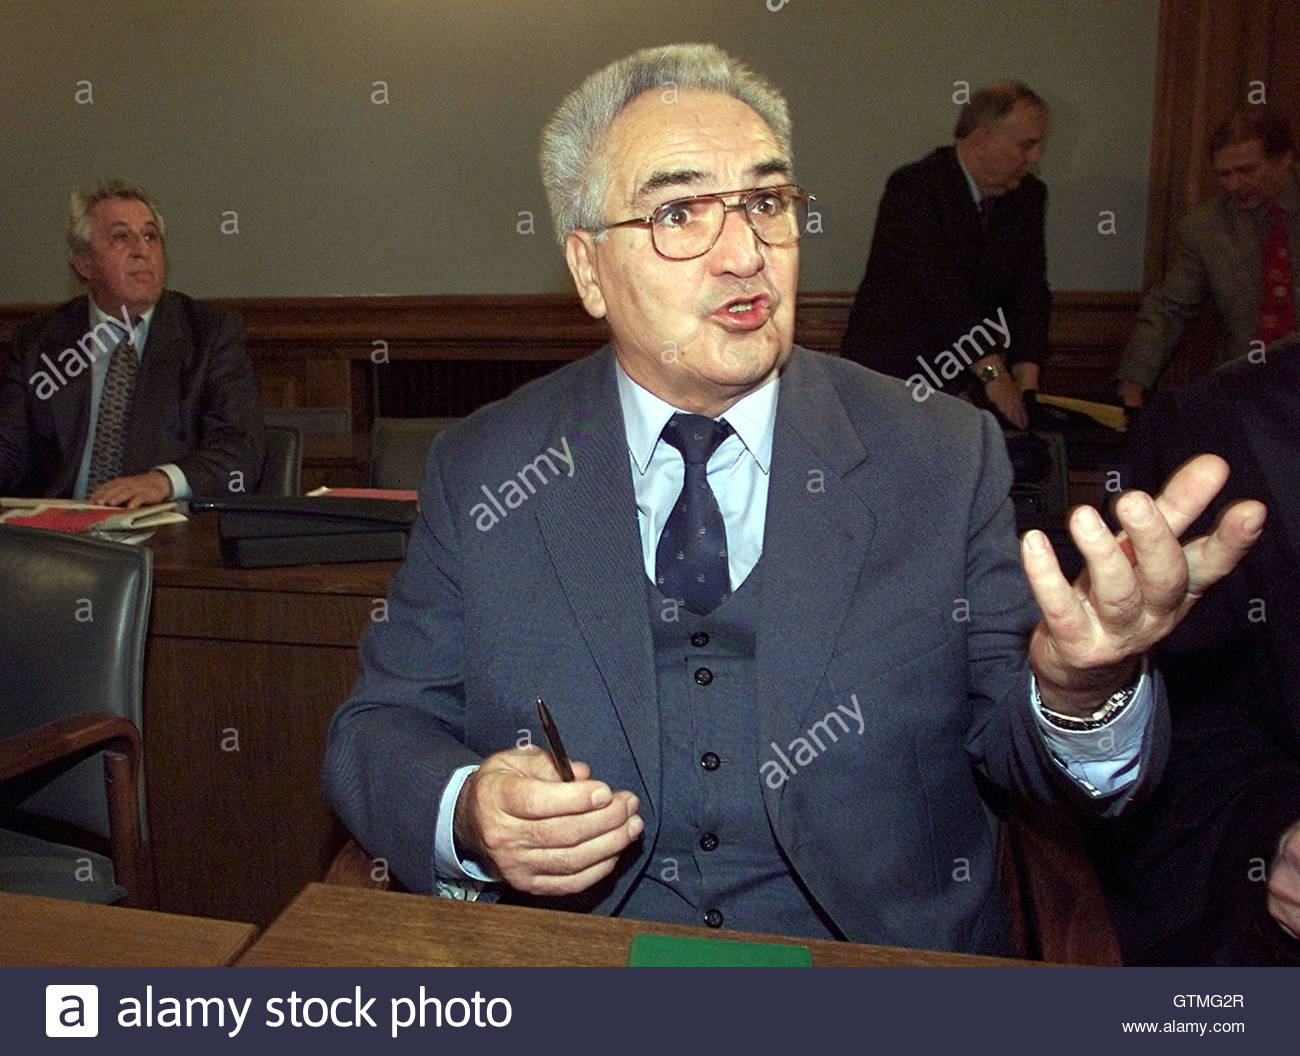 guenter kleiber c a former member of east s communist guenter kleiber c a former member of east s communist leadership answers journalist questions as he and egon krenz l east s last